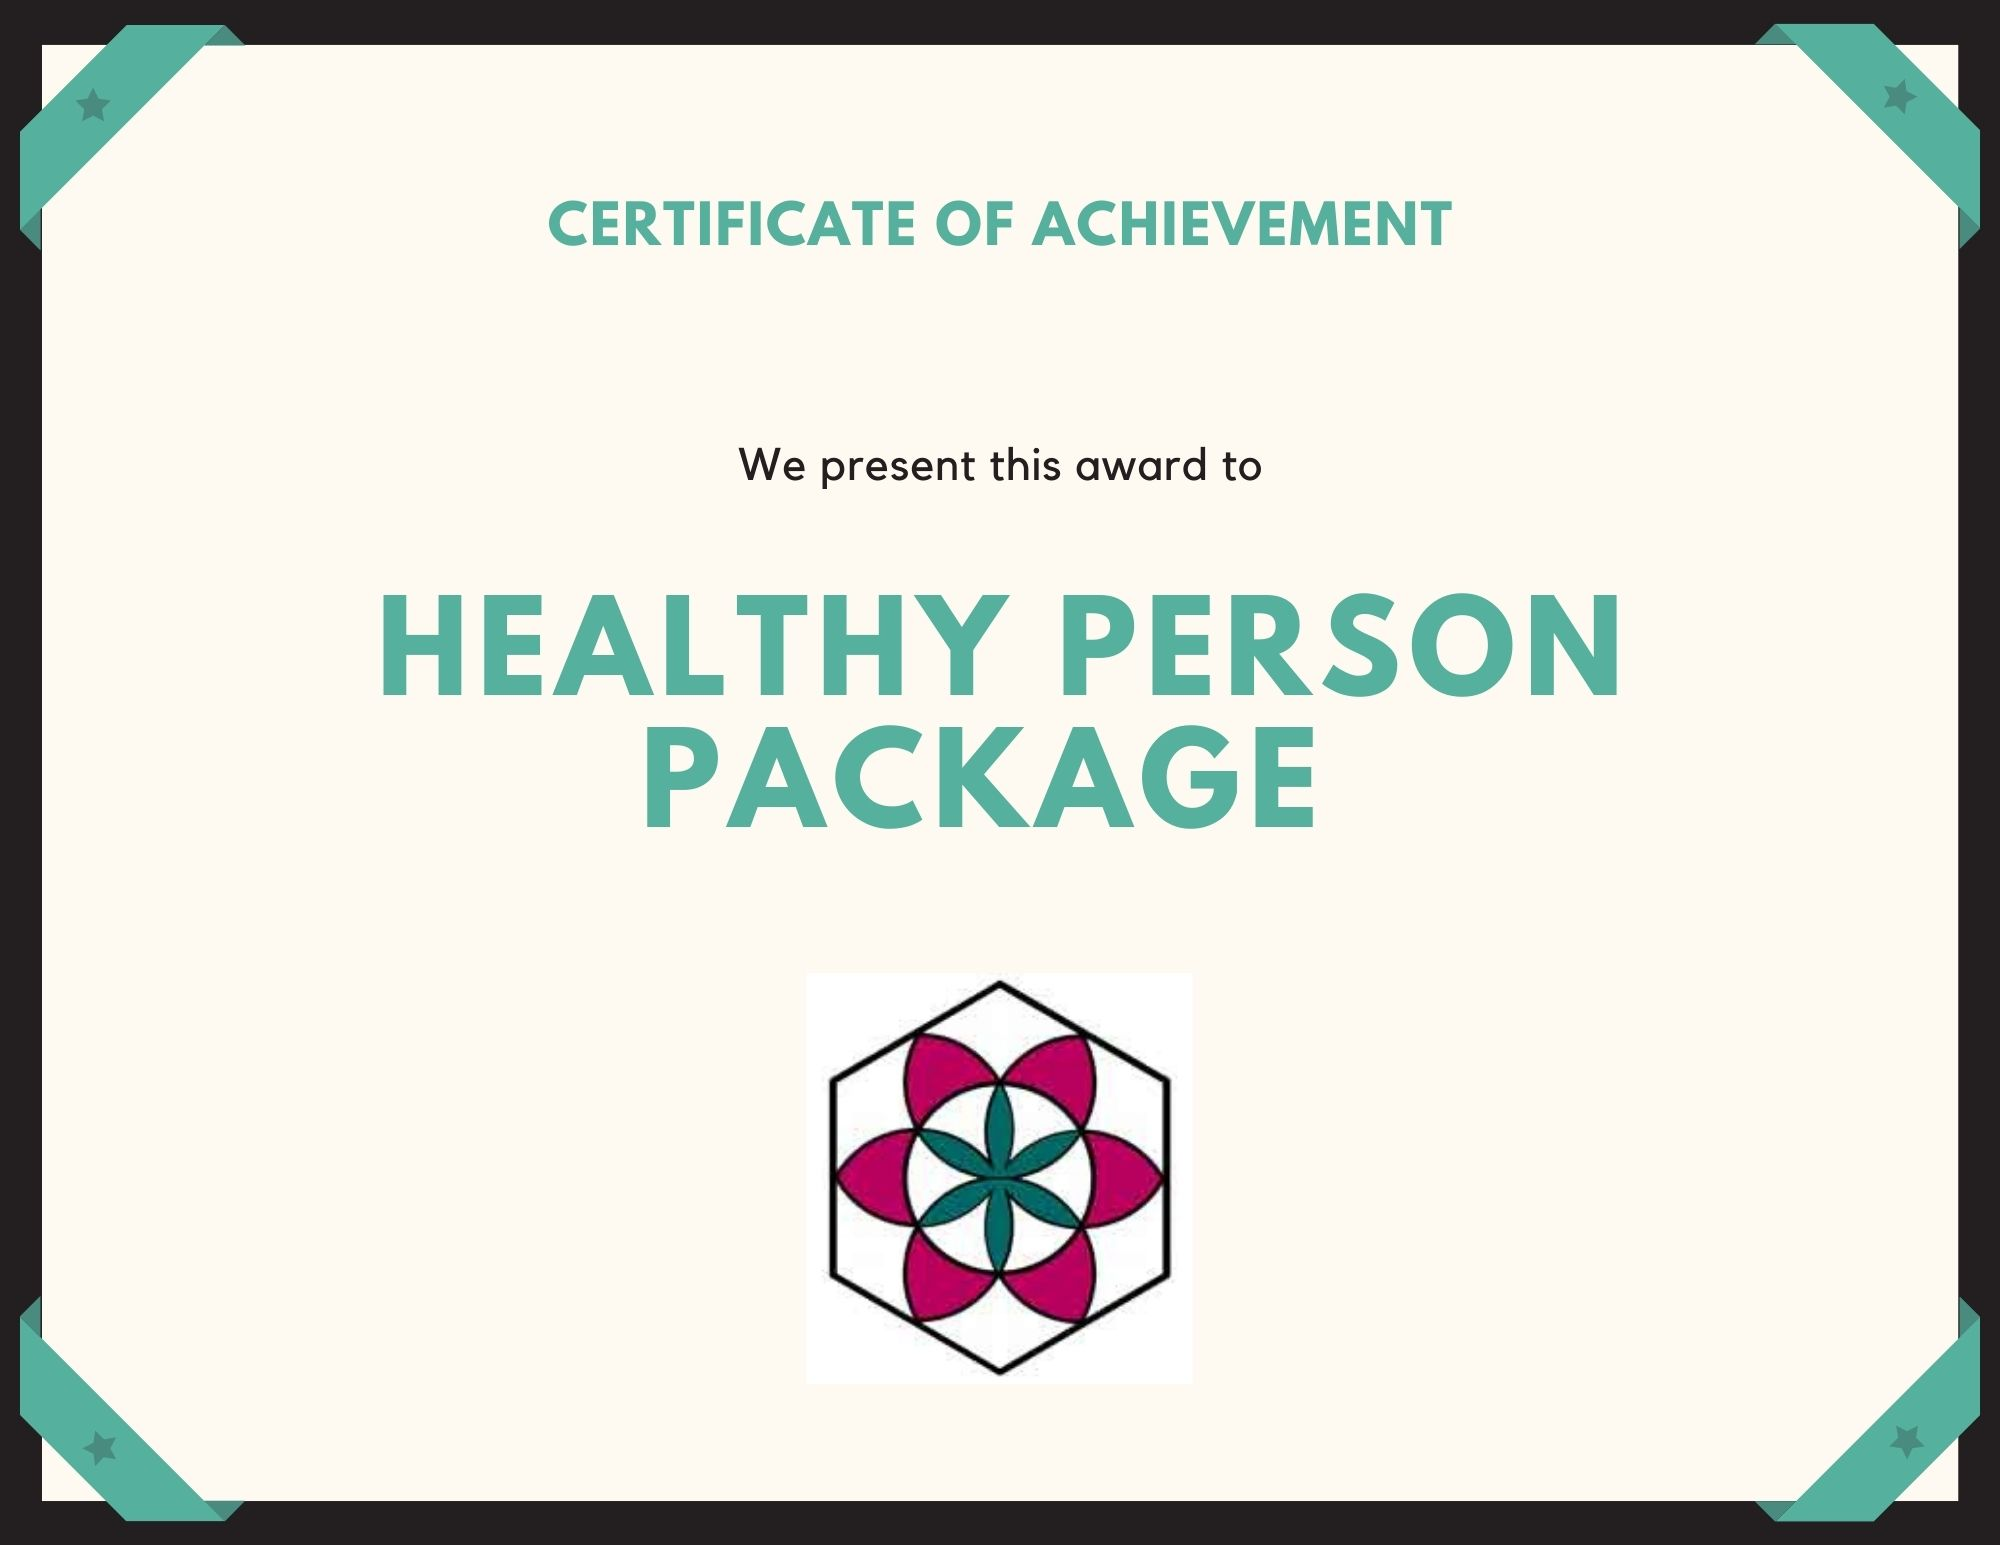 Healthy Person Package